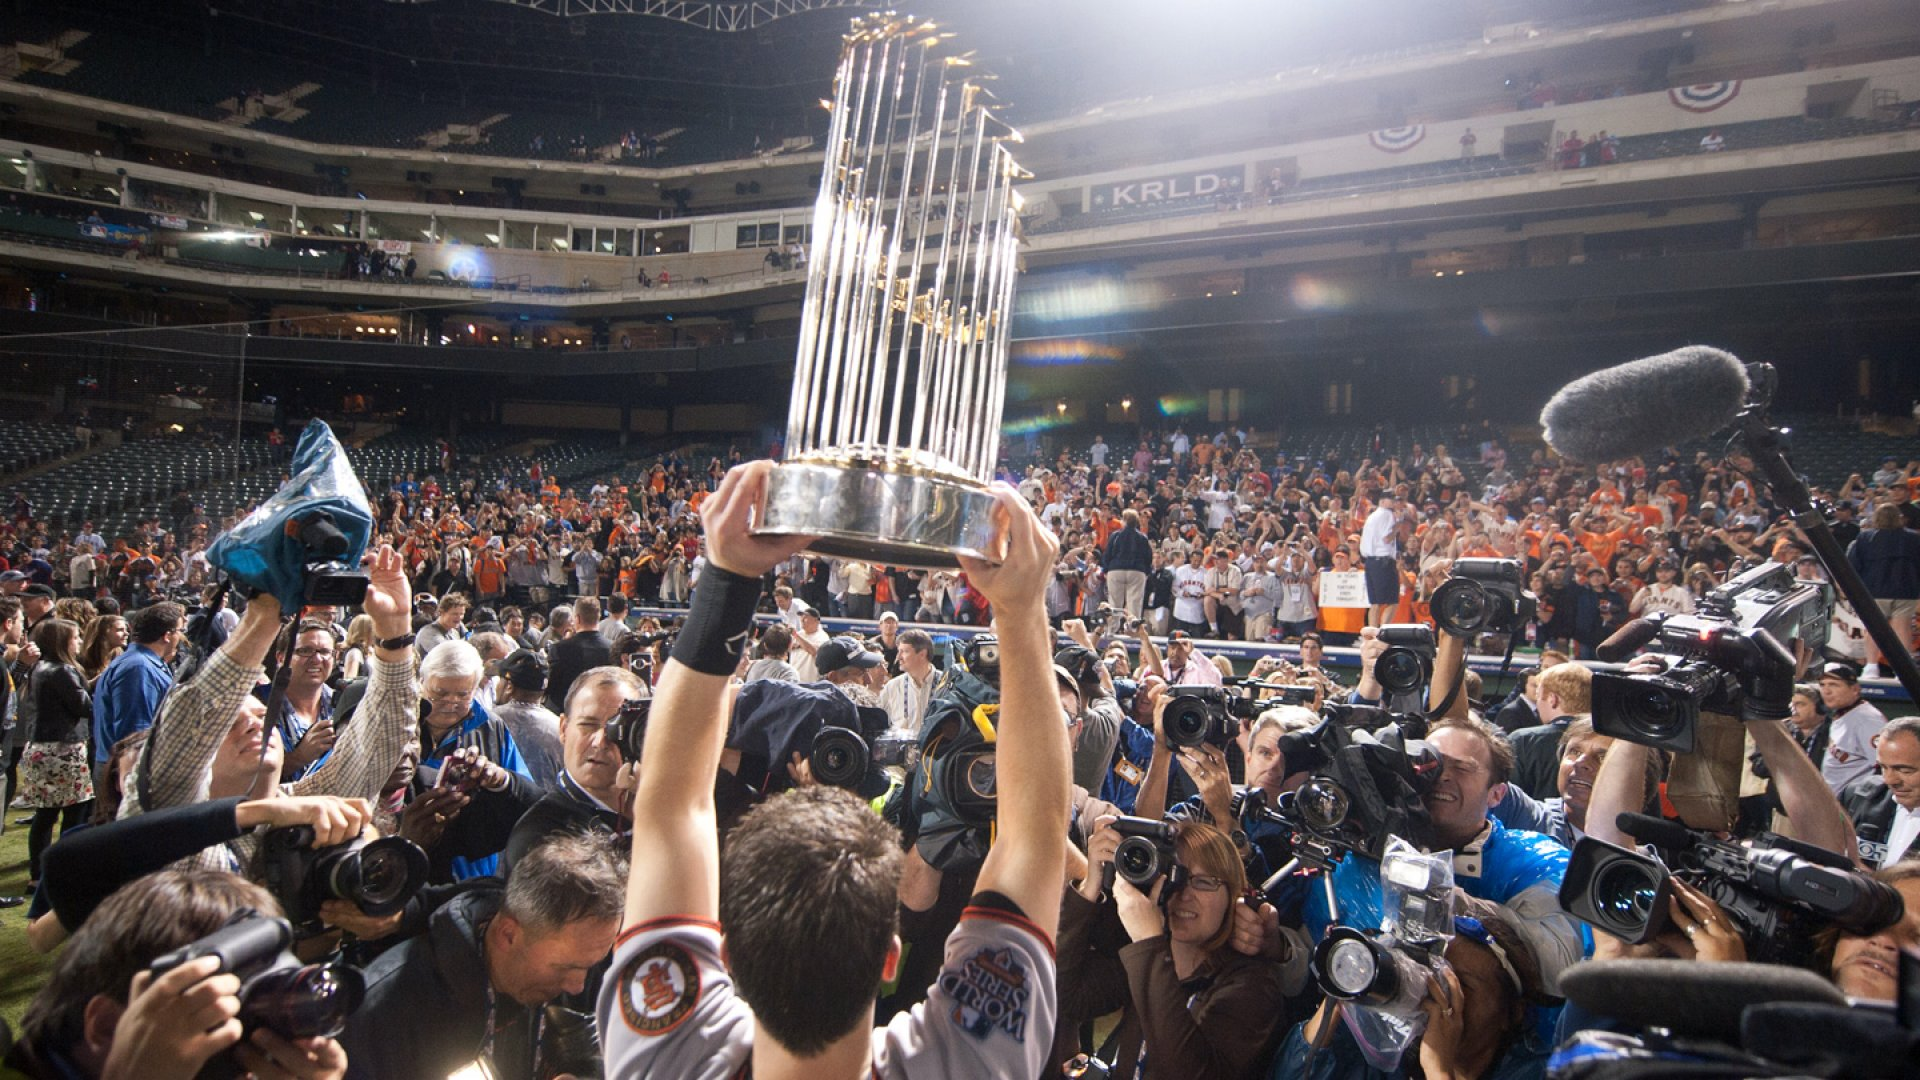 Buster Posey #26 of the San Francisco Giants celebrates by holding up the World Series Trophy after defeating the Texas Rangers in Game Five of the 2010 MLB World Series at Rangers Ballpark in Arlington, Texas on November 1, 2010.